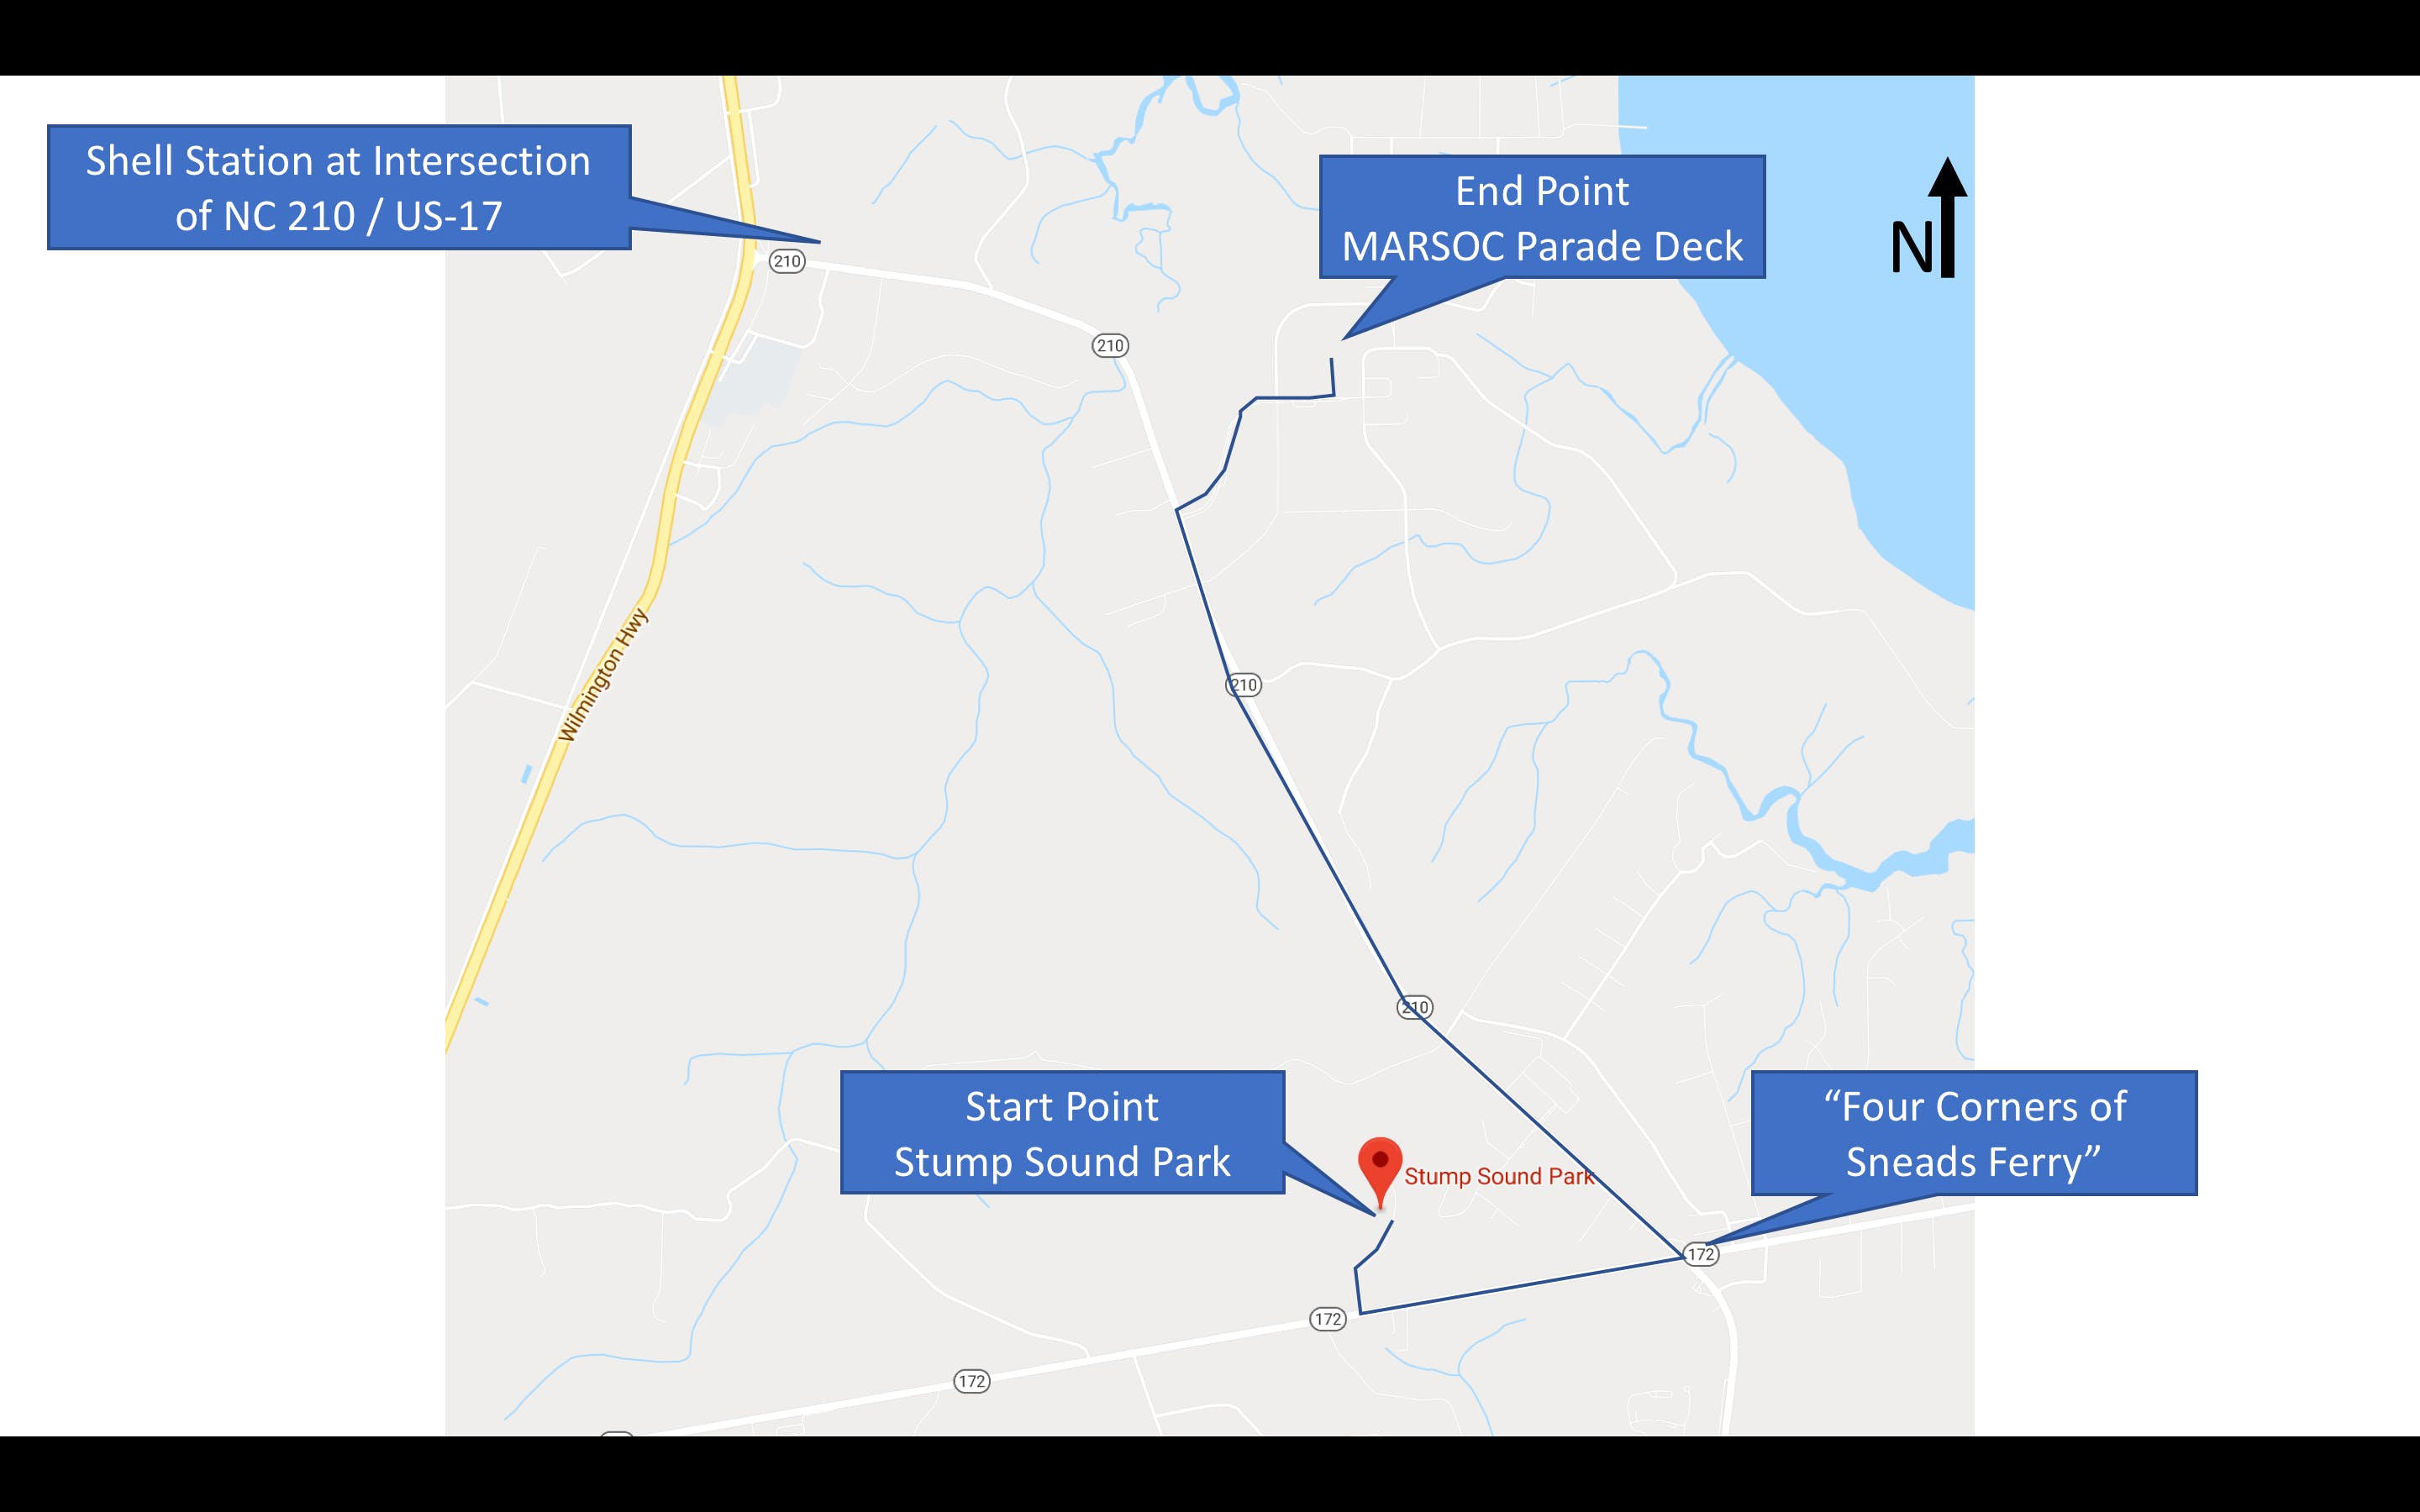 Walk With The Rucking Raiders Sneads Ferry Nc 27 Jul 2018